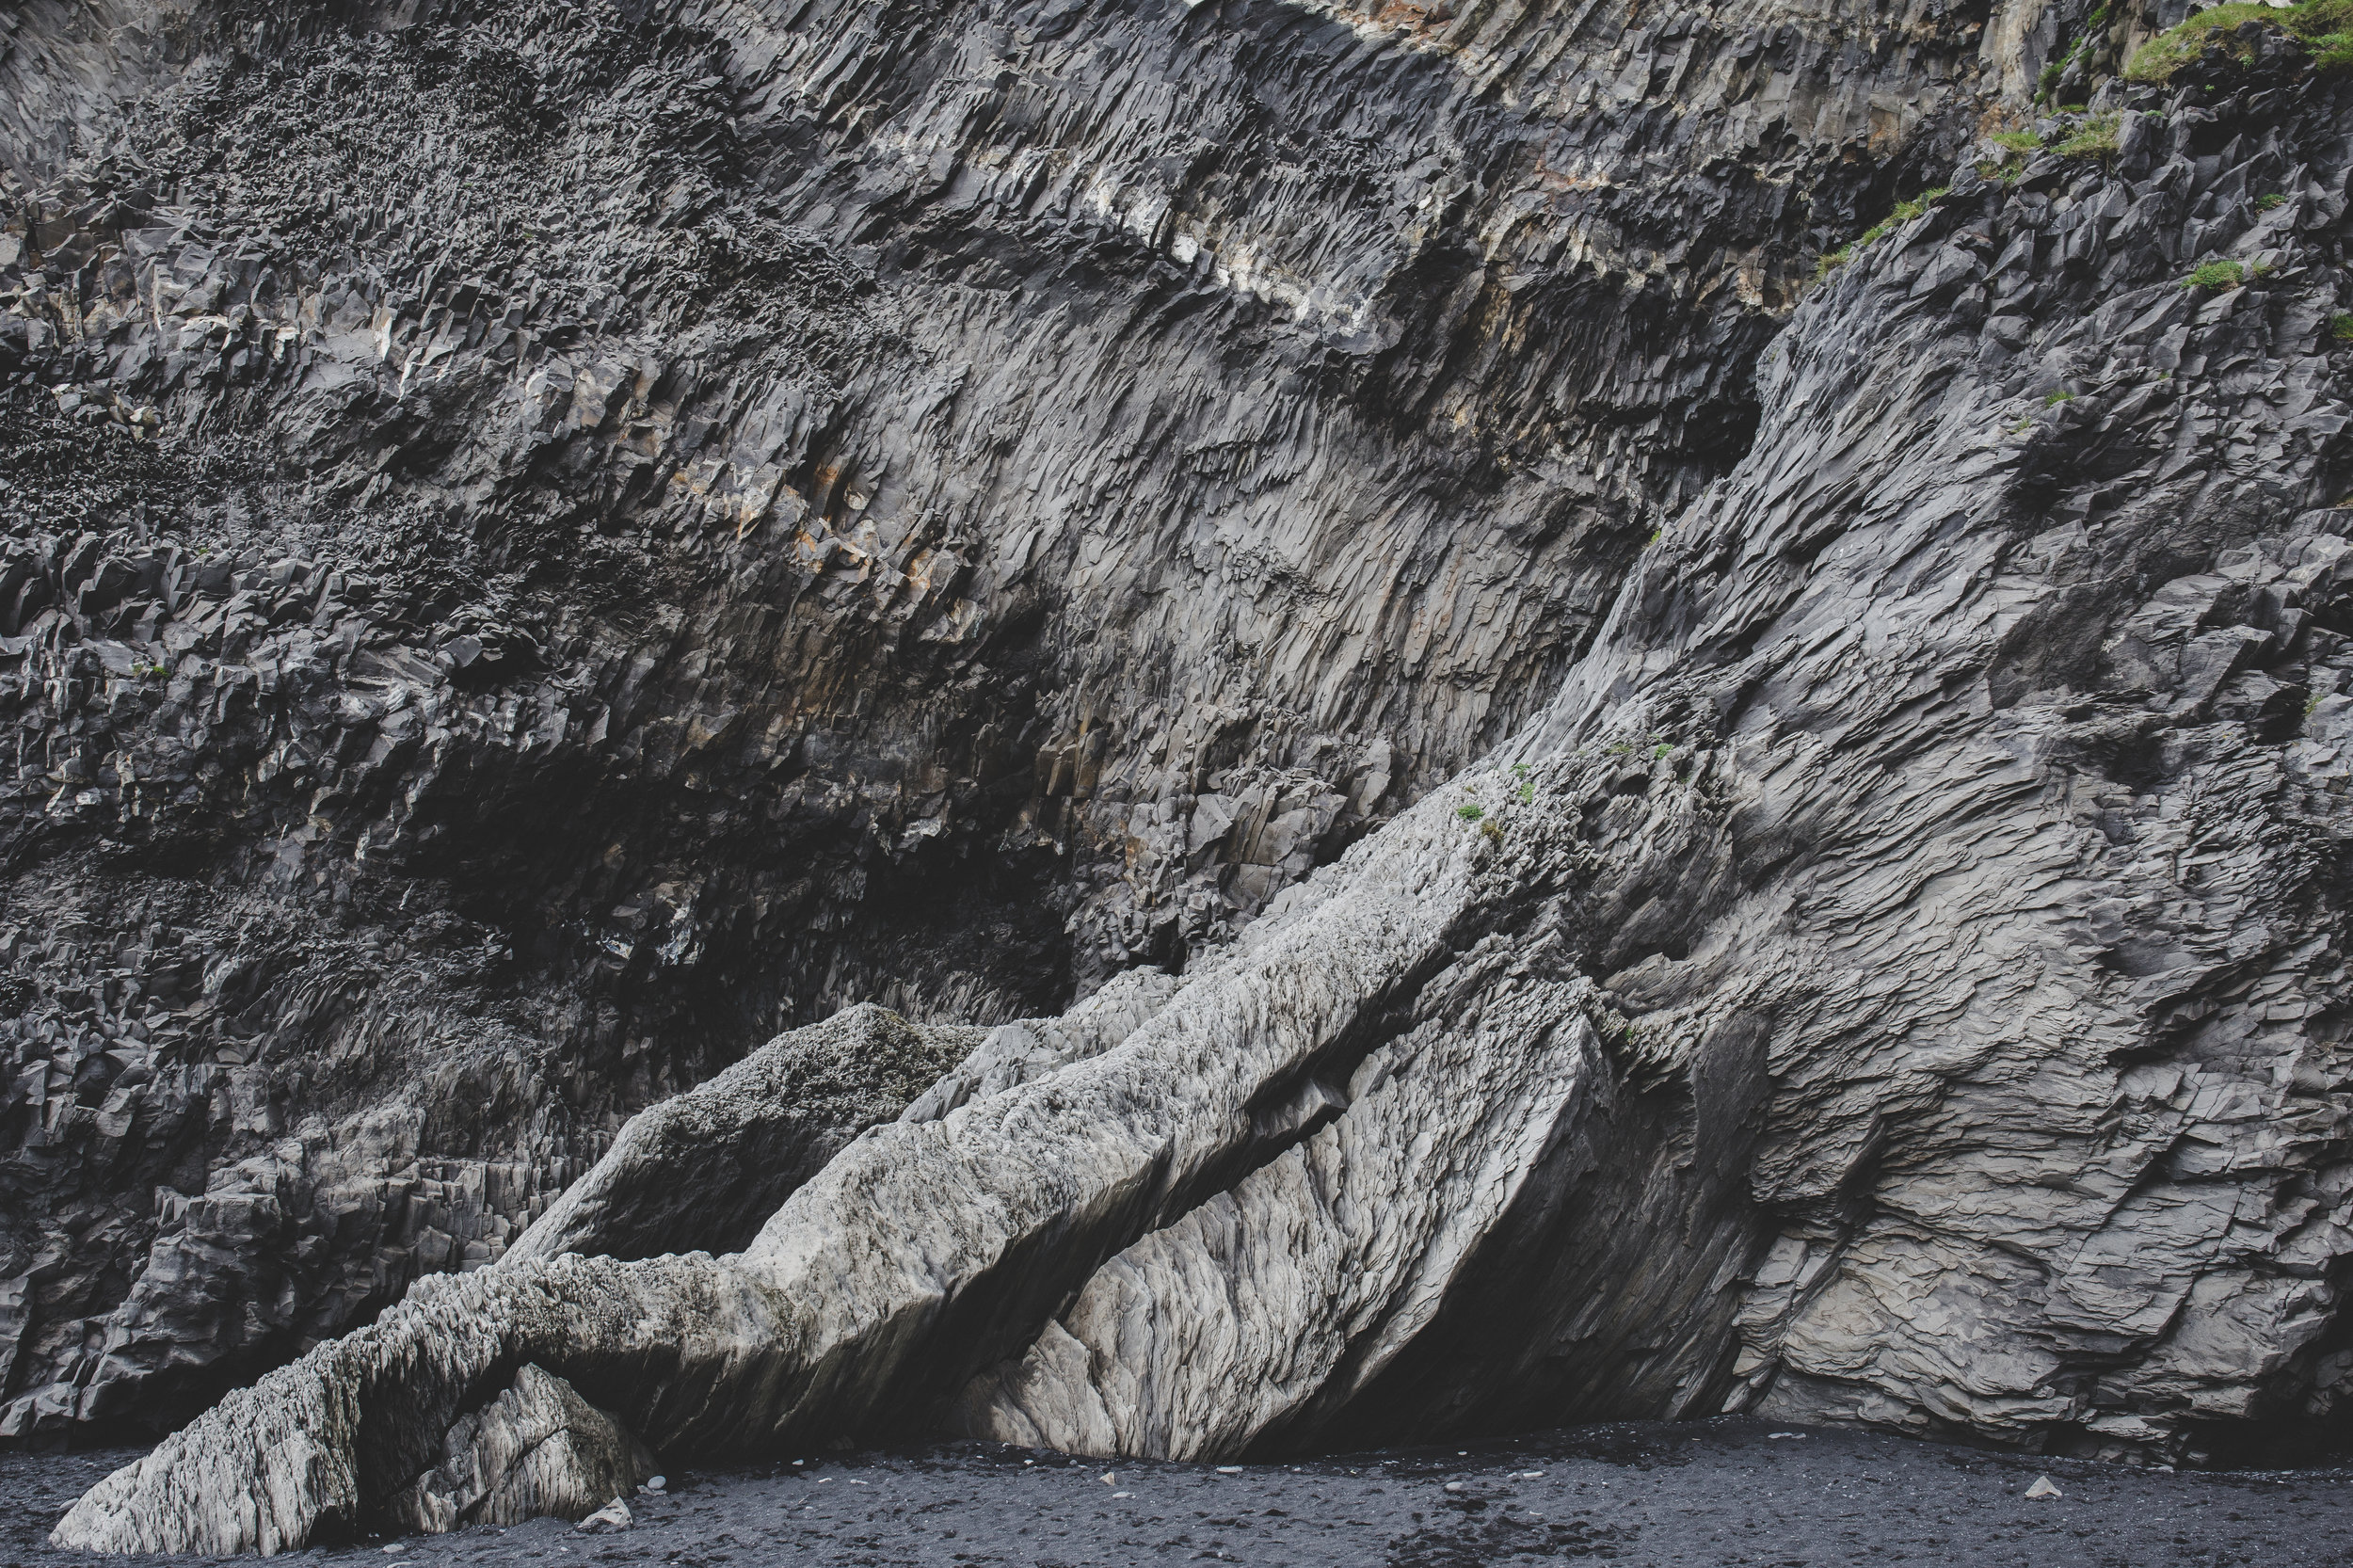 Rock formations on the black sand beach